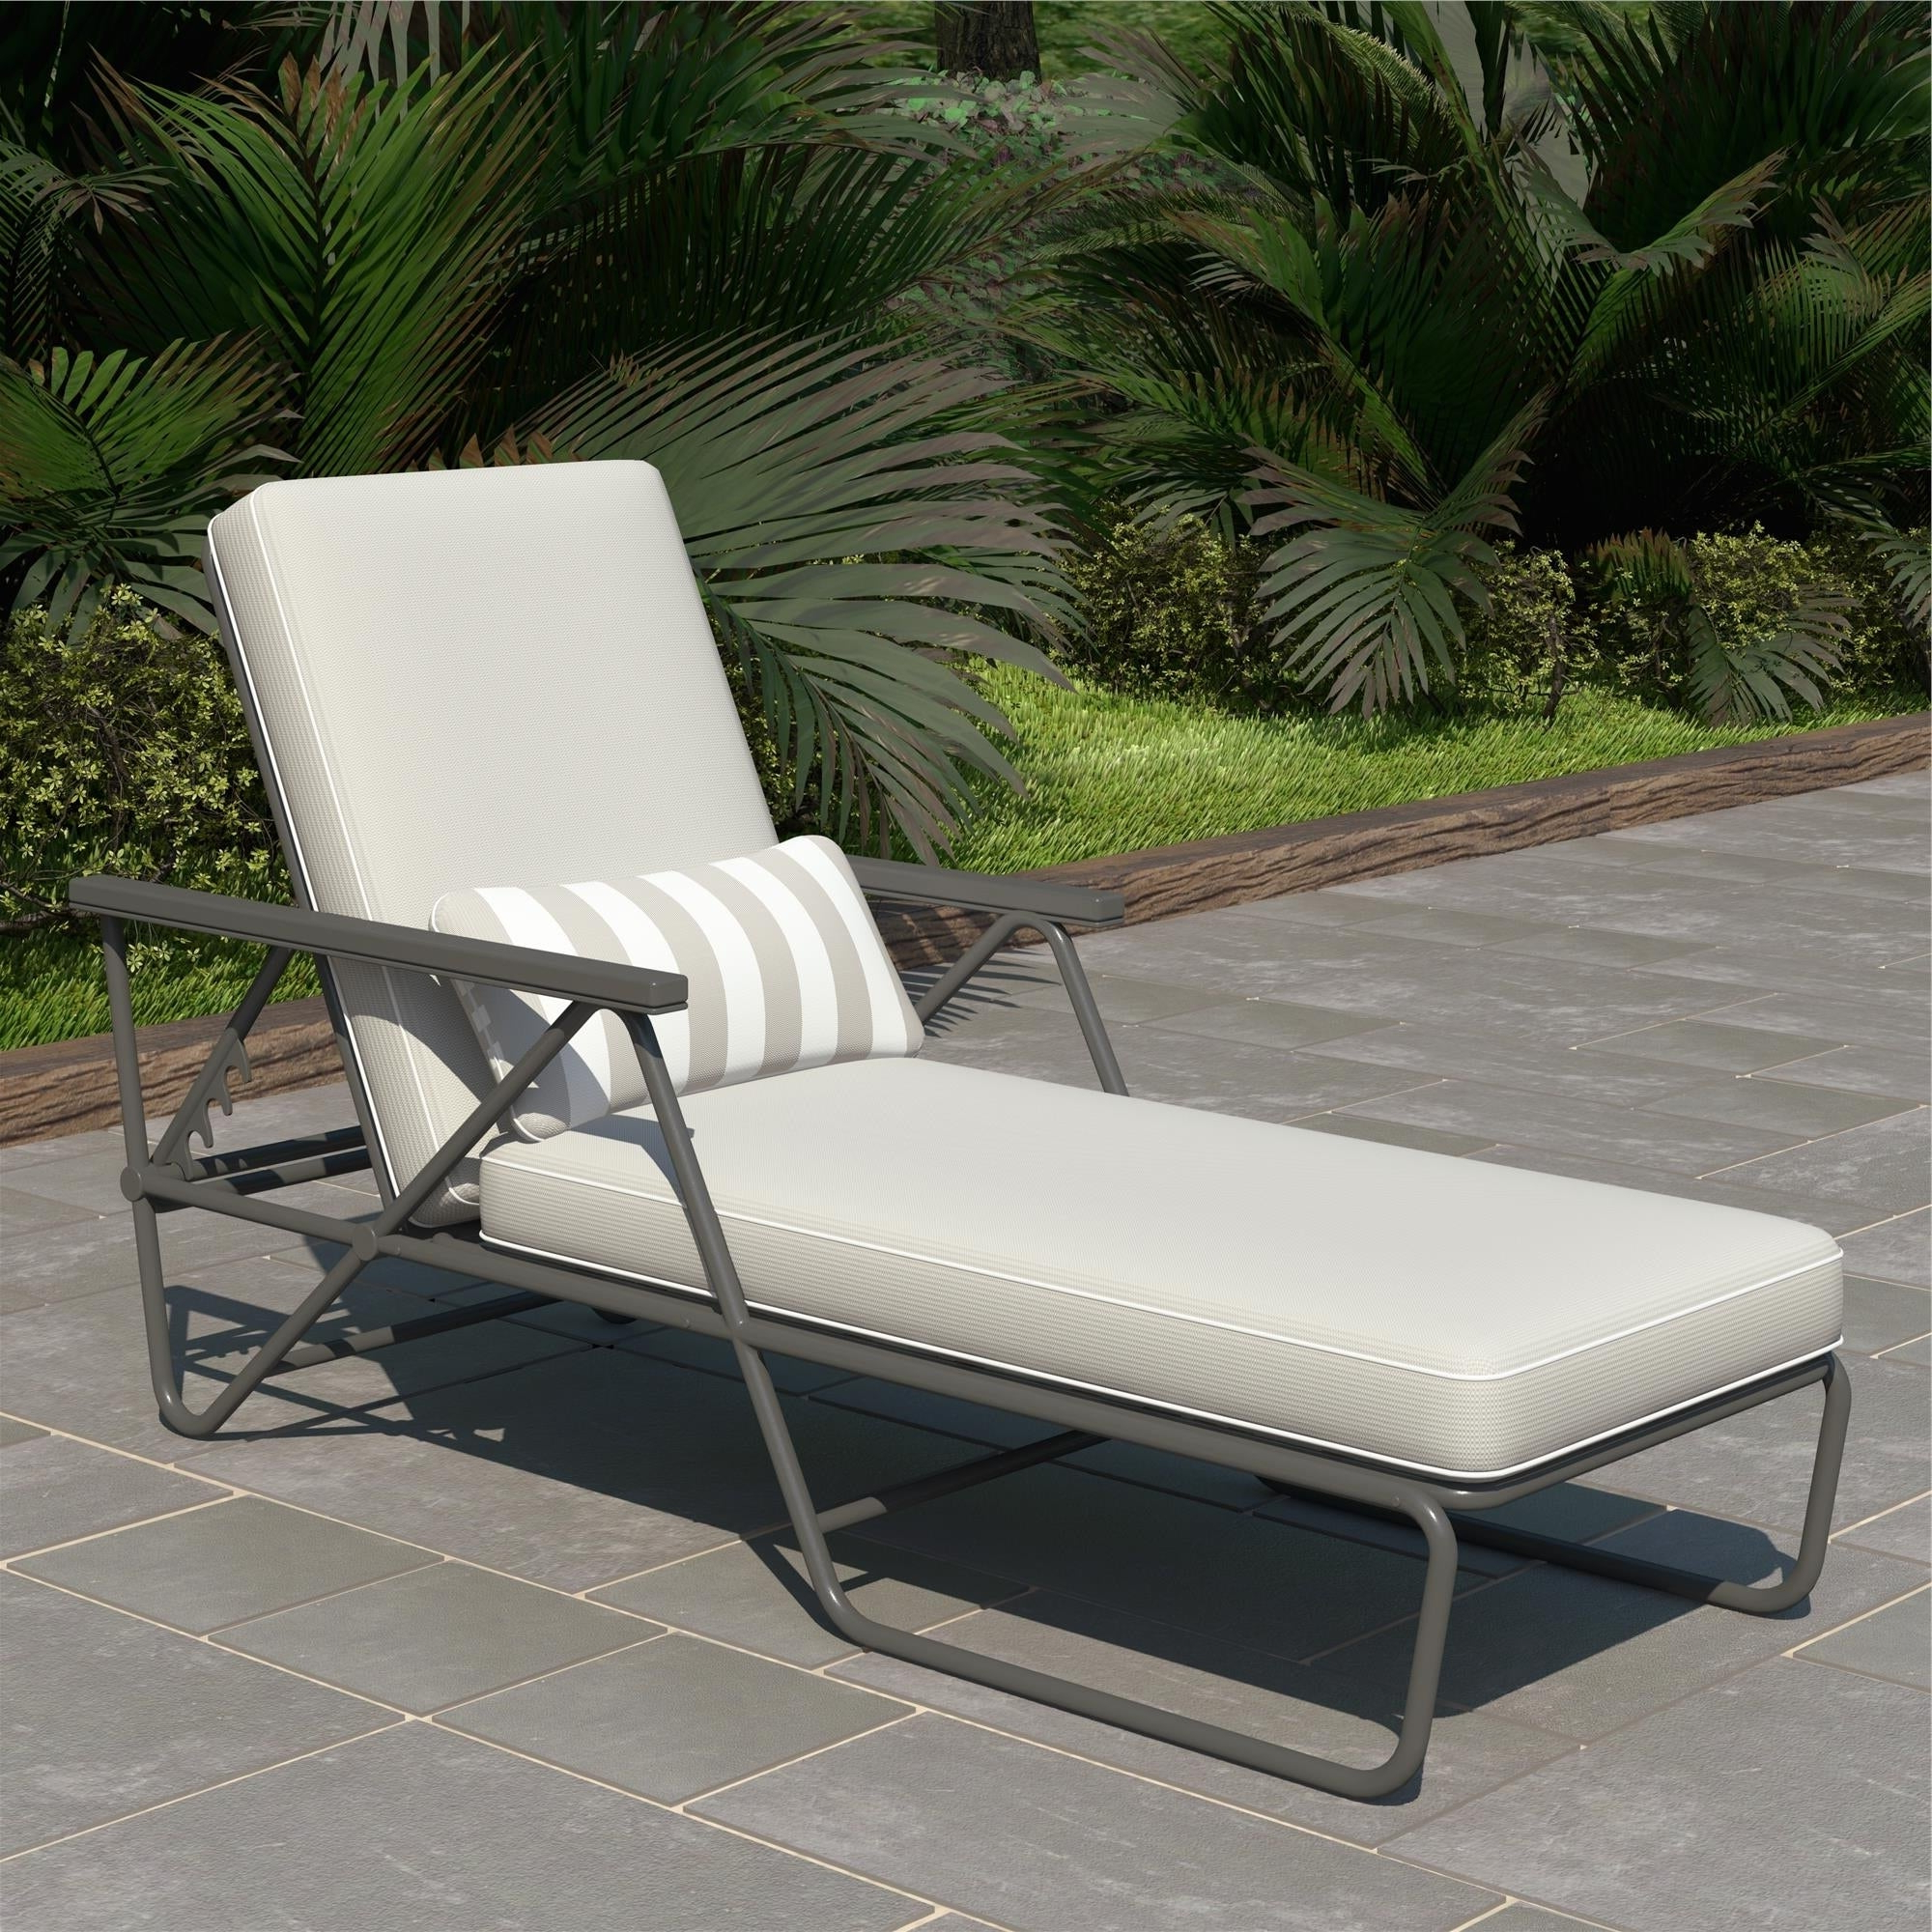 Novogratz Poolside Collection Connie Outdoor Chaise Lounge Inside 2020 Striped Outdoor Chaises With Umbrella (View 11 of 25)